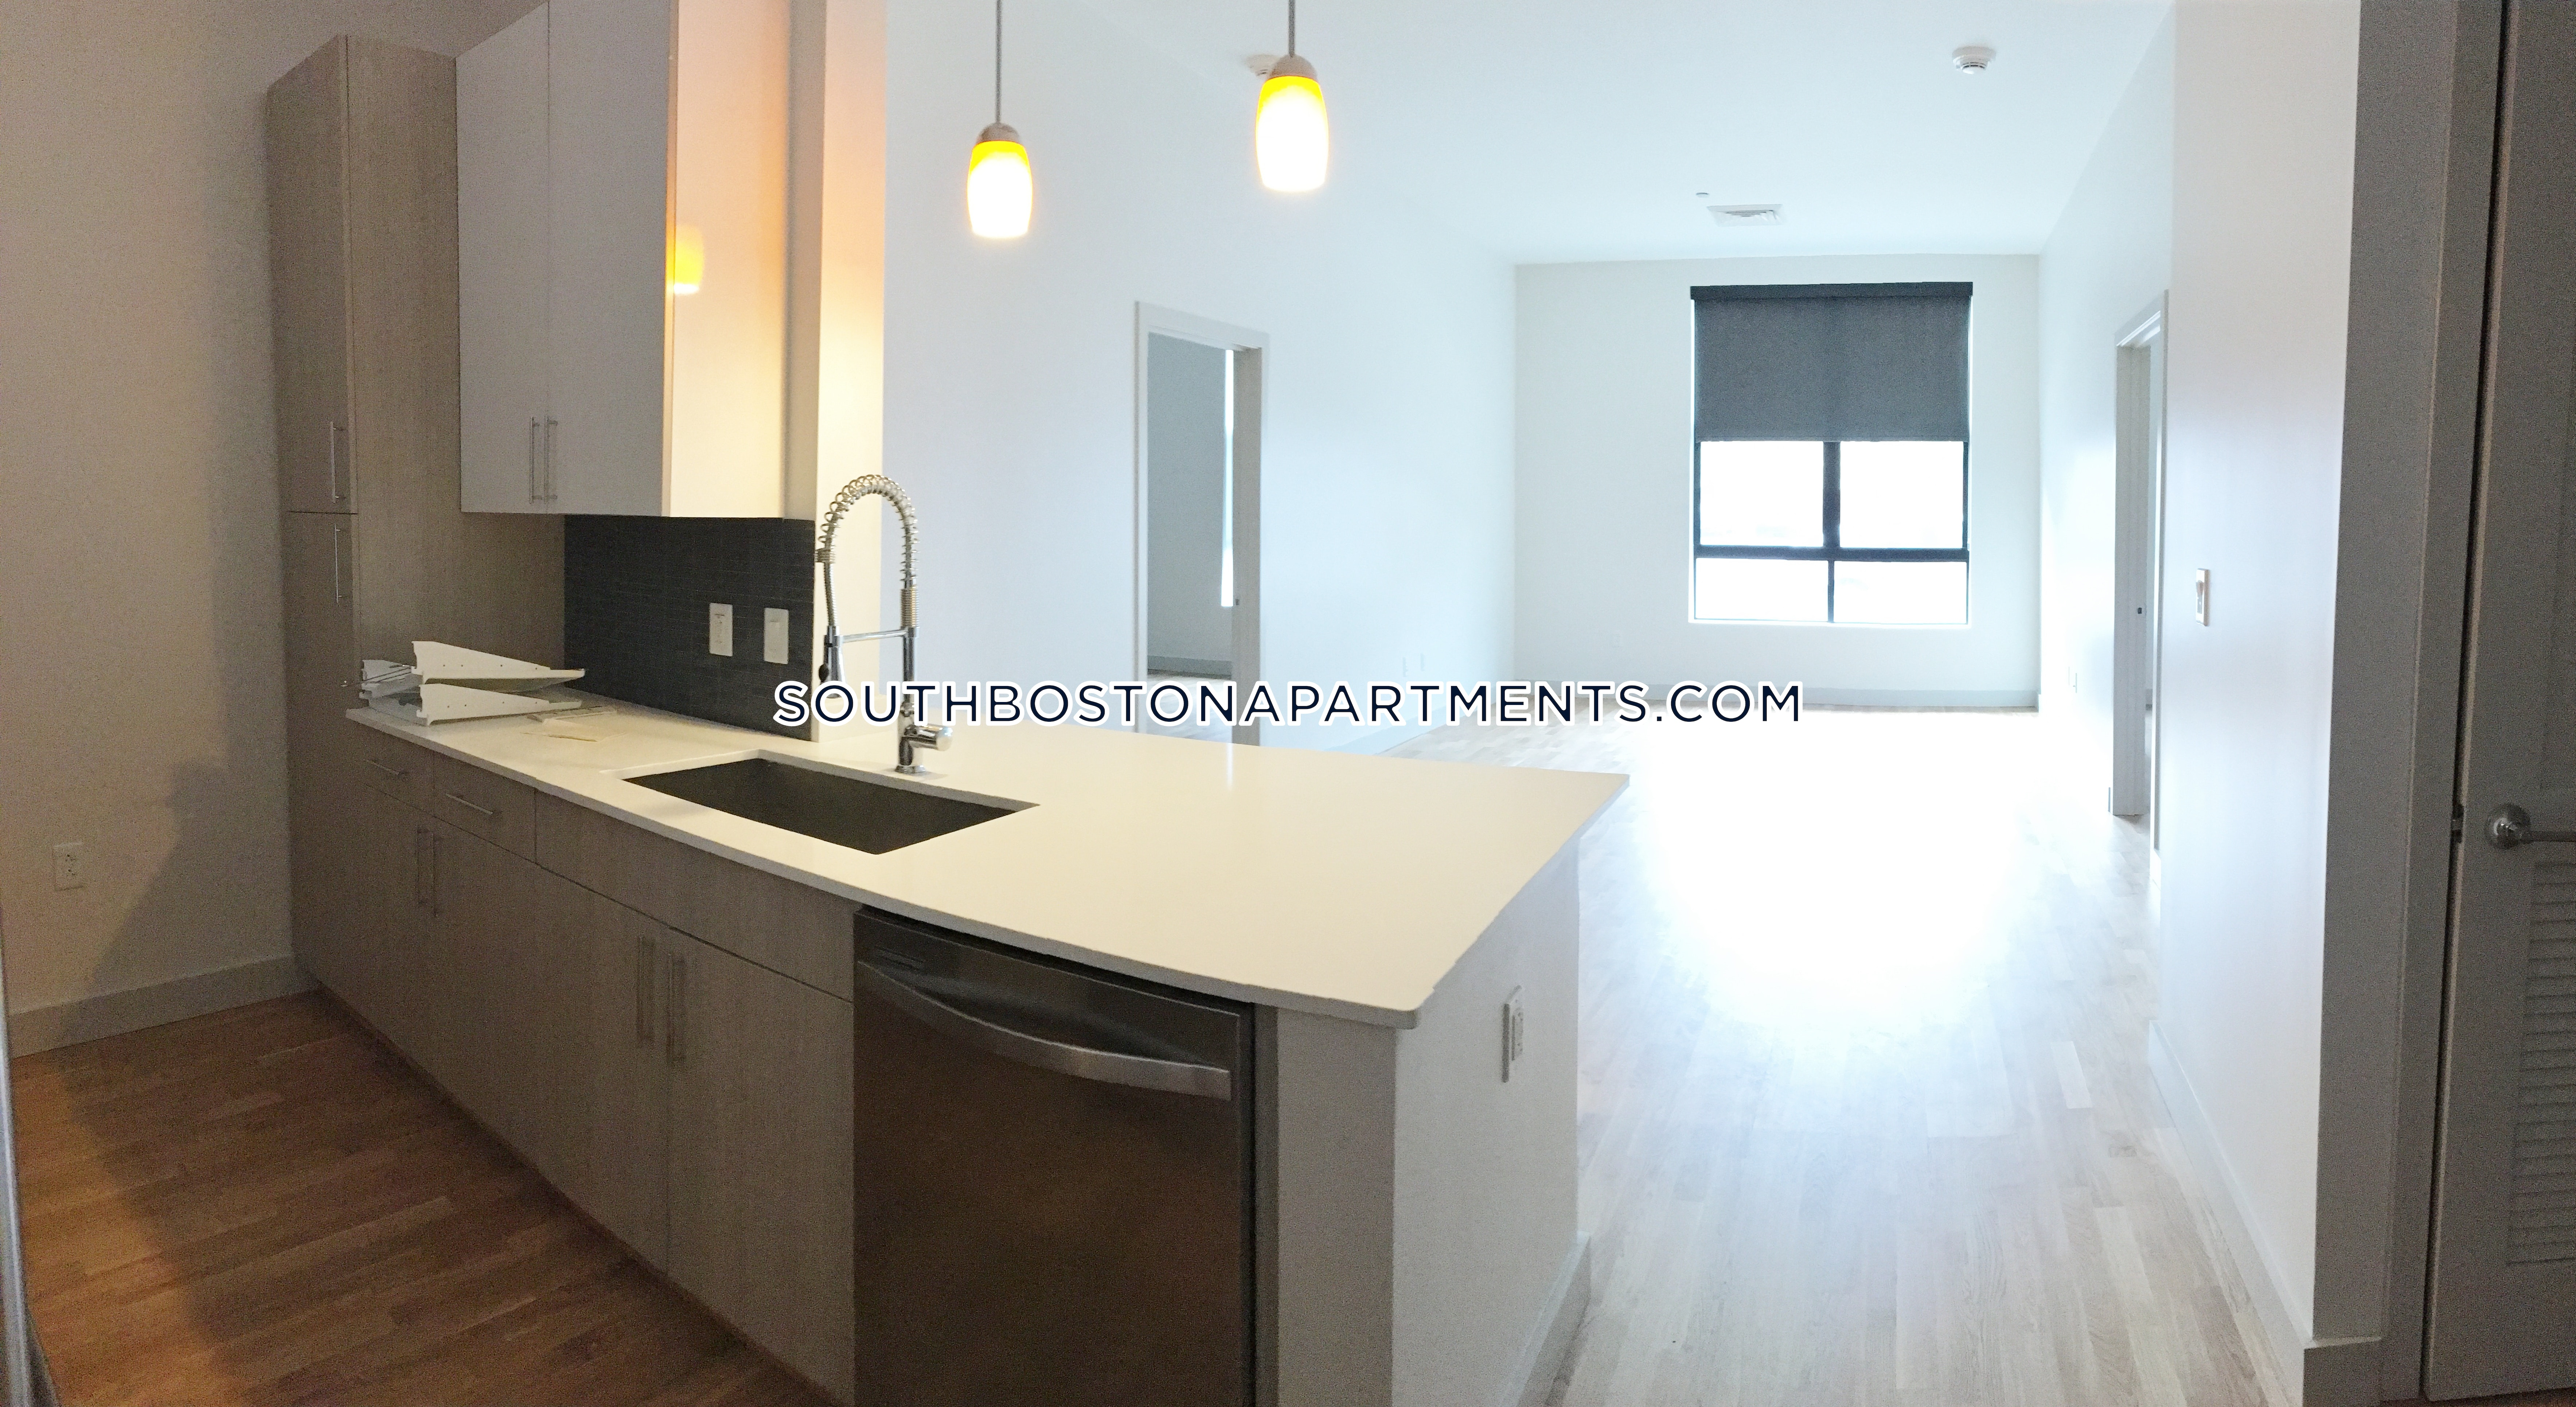 2 Beds 2 Baths - Boston - South Boston - West Side $3,899